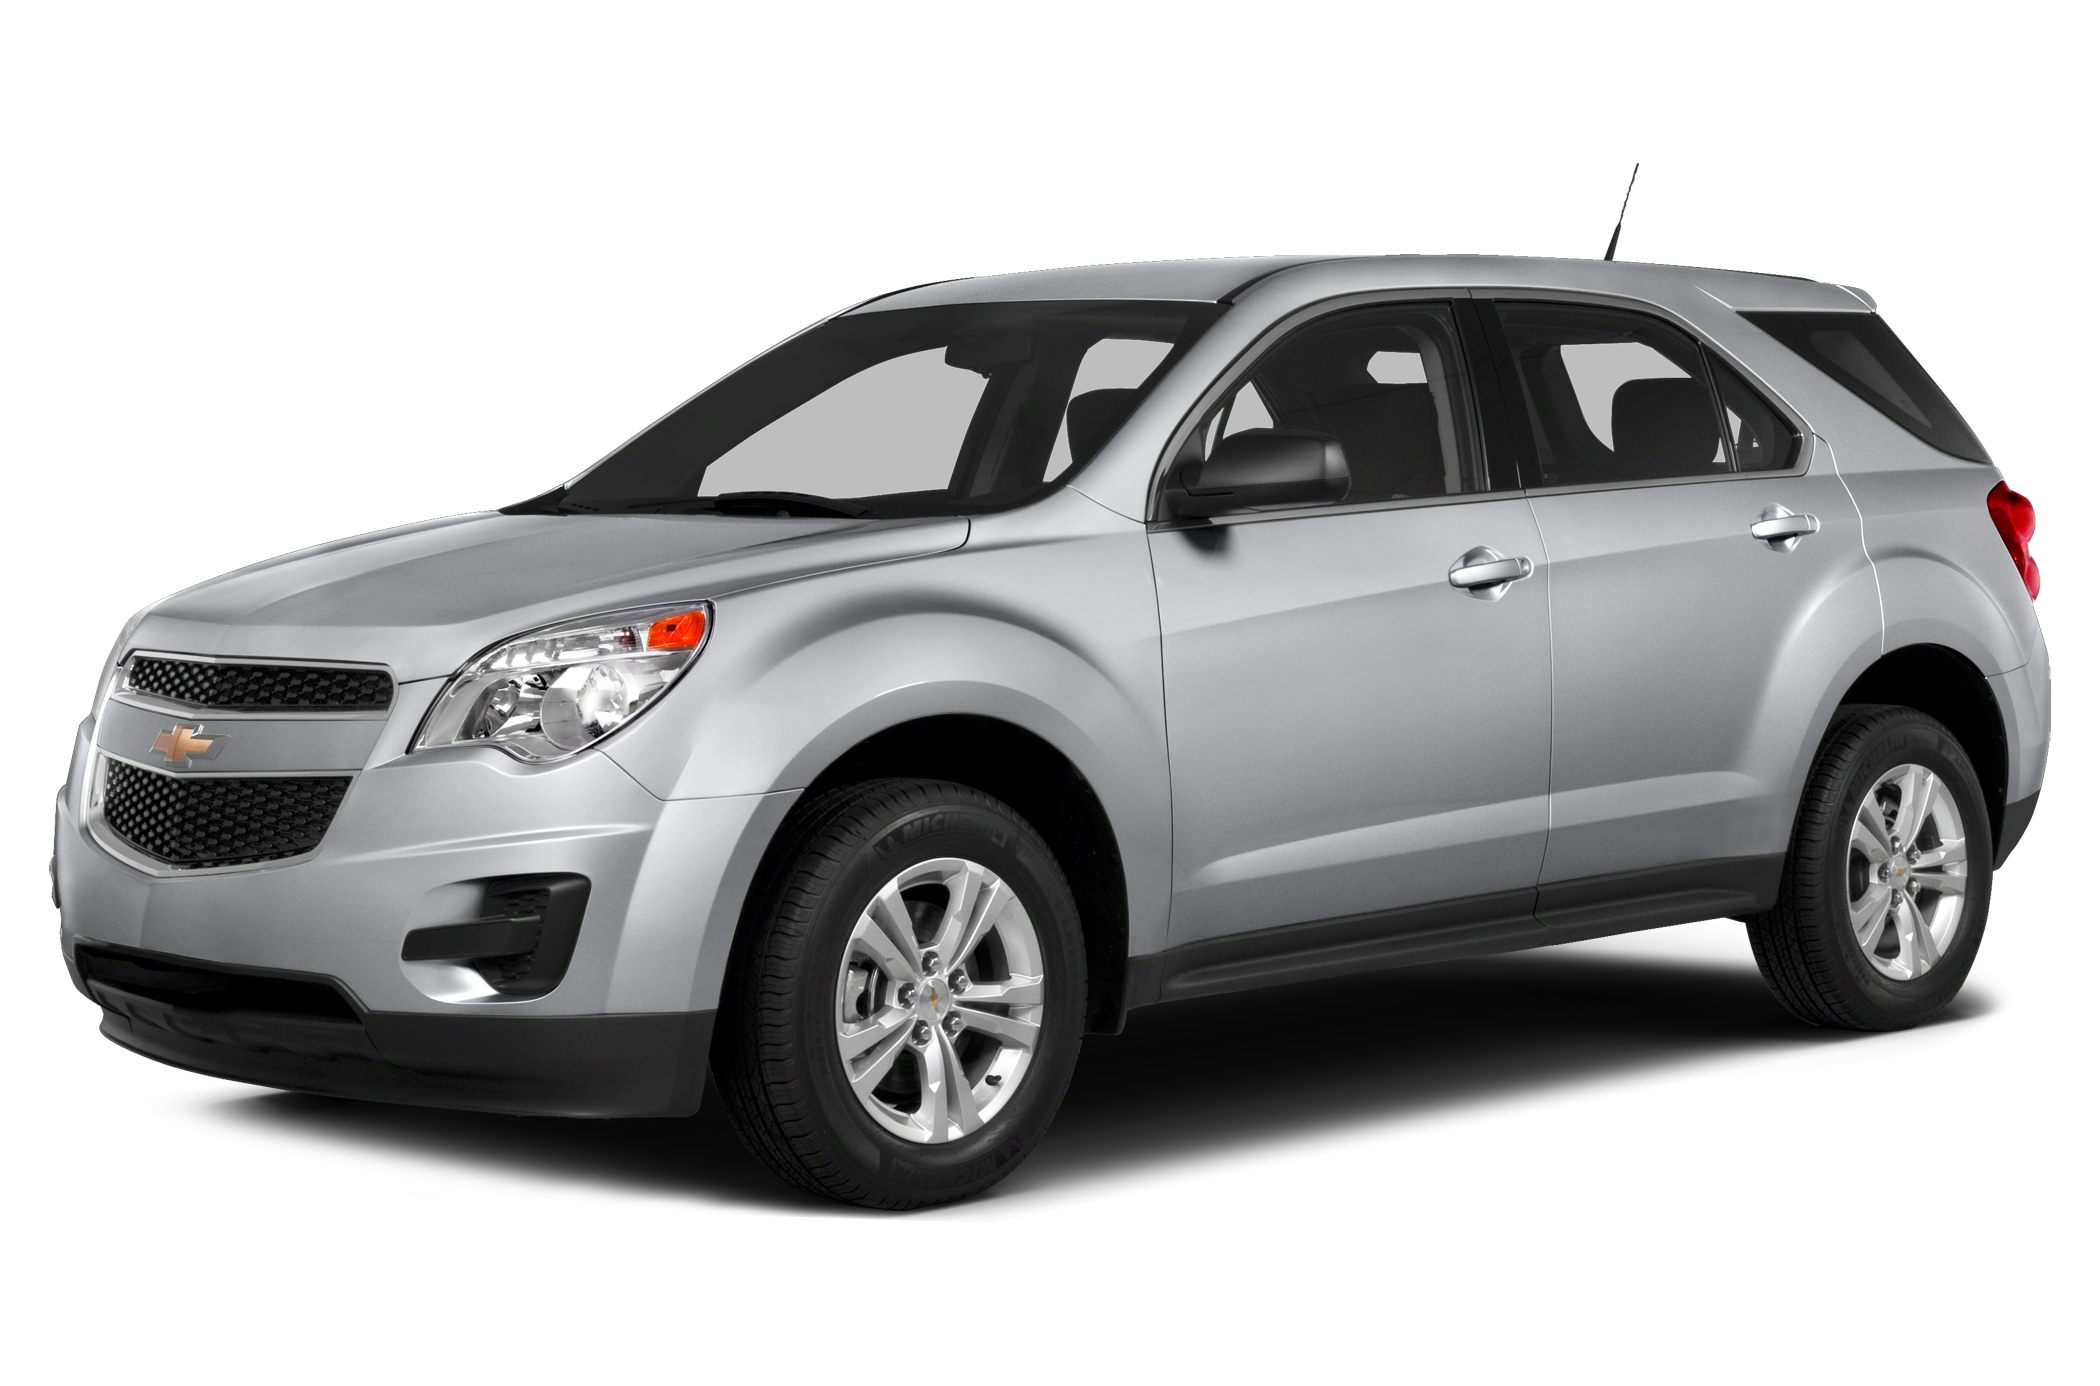 2013 Chevrolet Equinox LS SUV for sale in Erie for $19,855 with 6,868 miles.